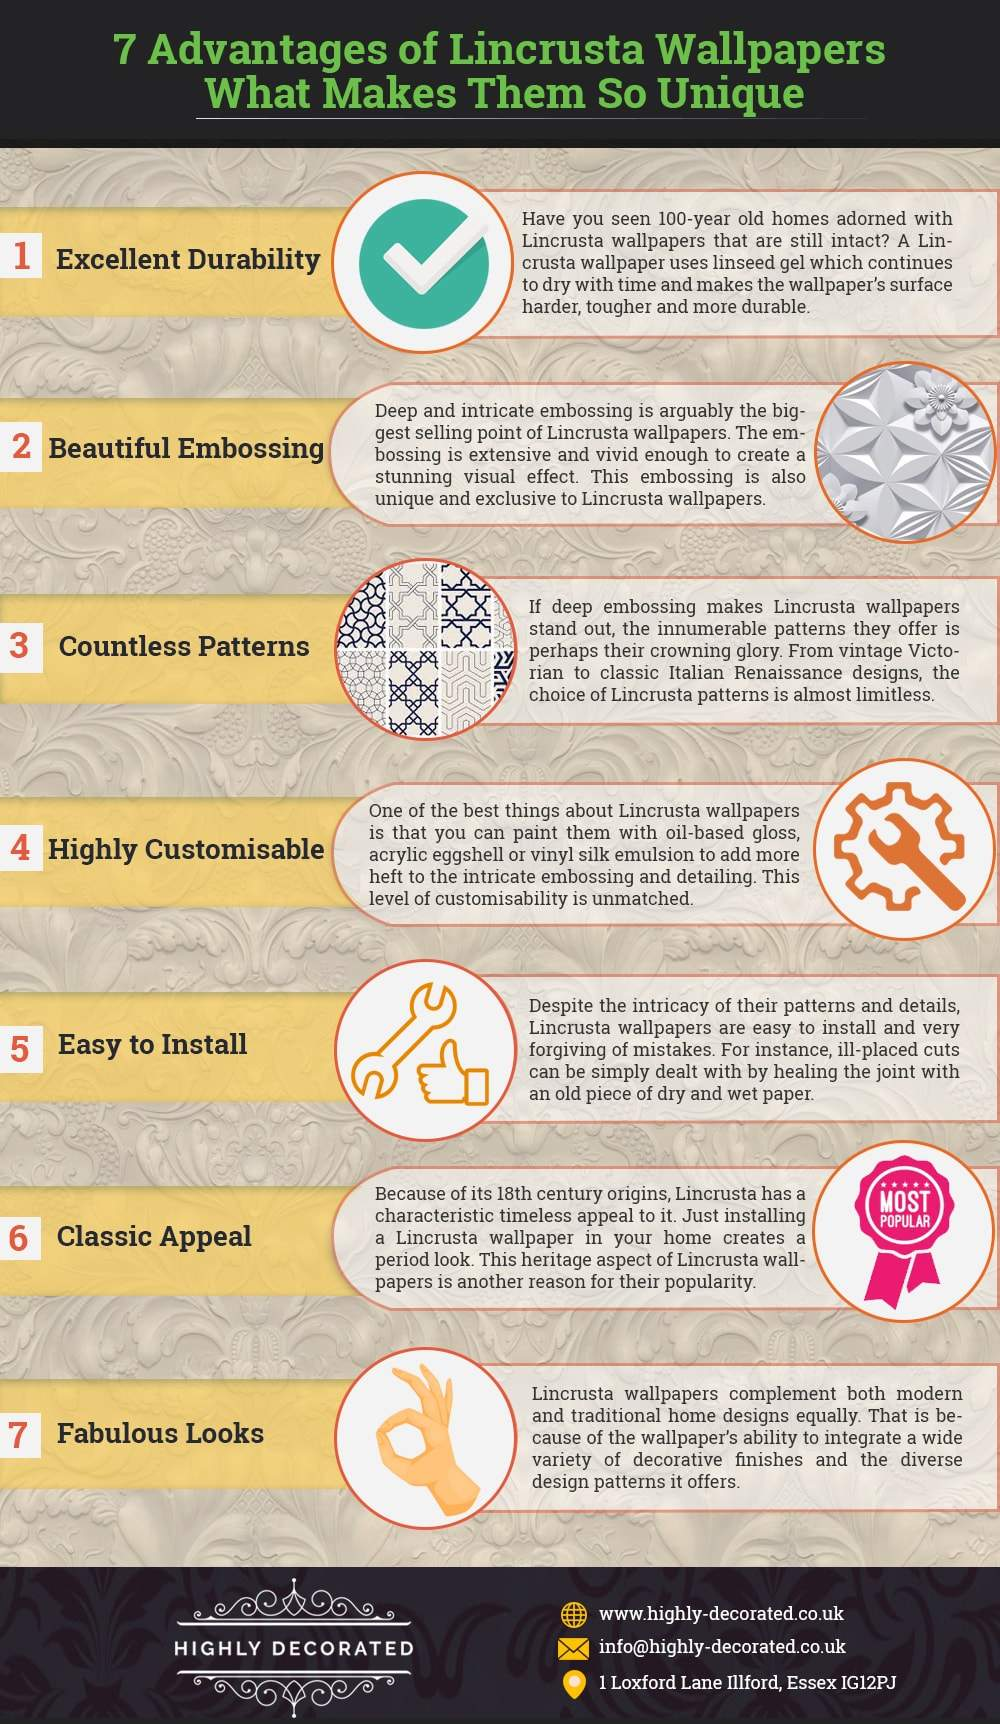 7 Advantages Of Lincrusta Wallpapers What Makes Them So